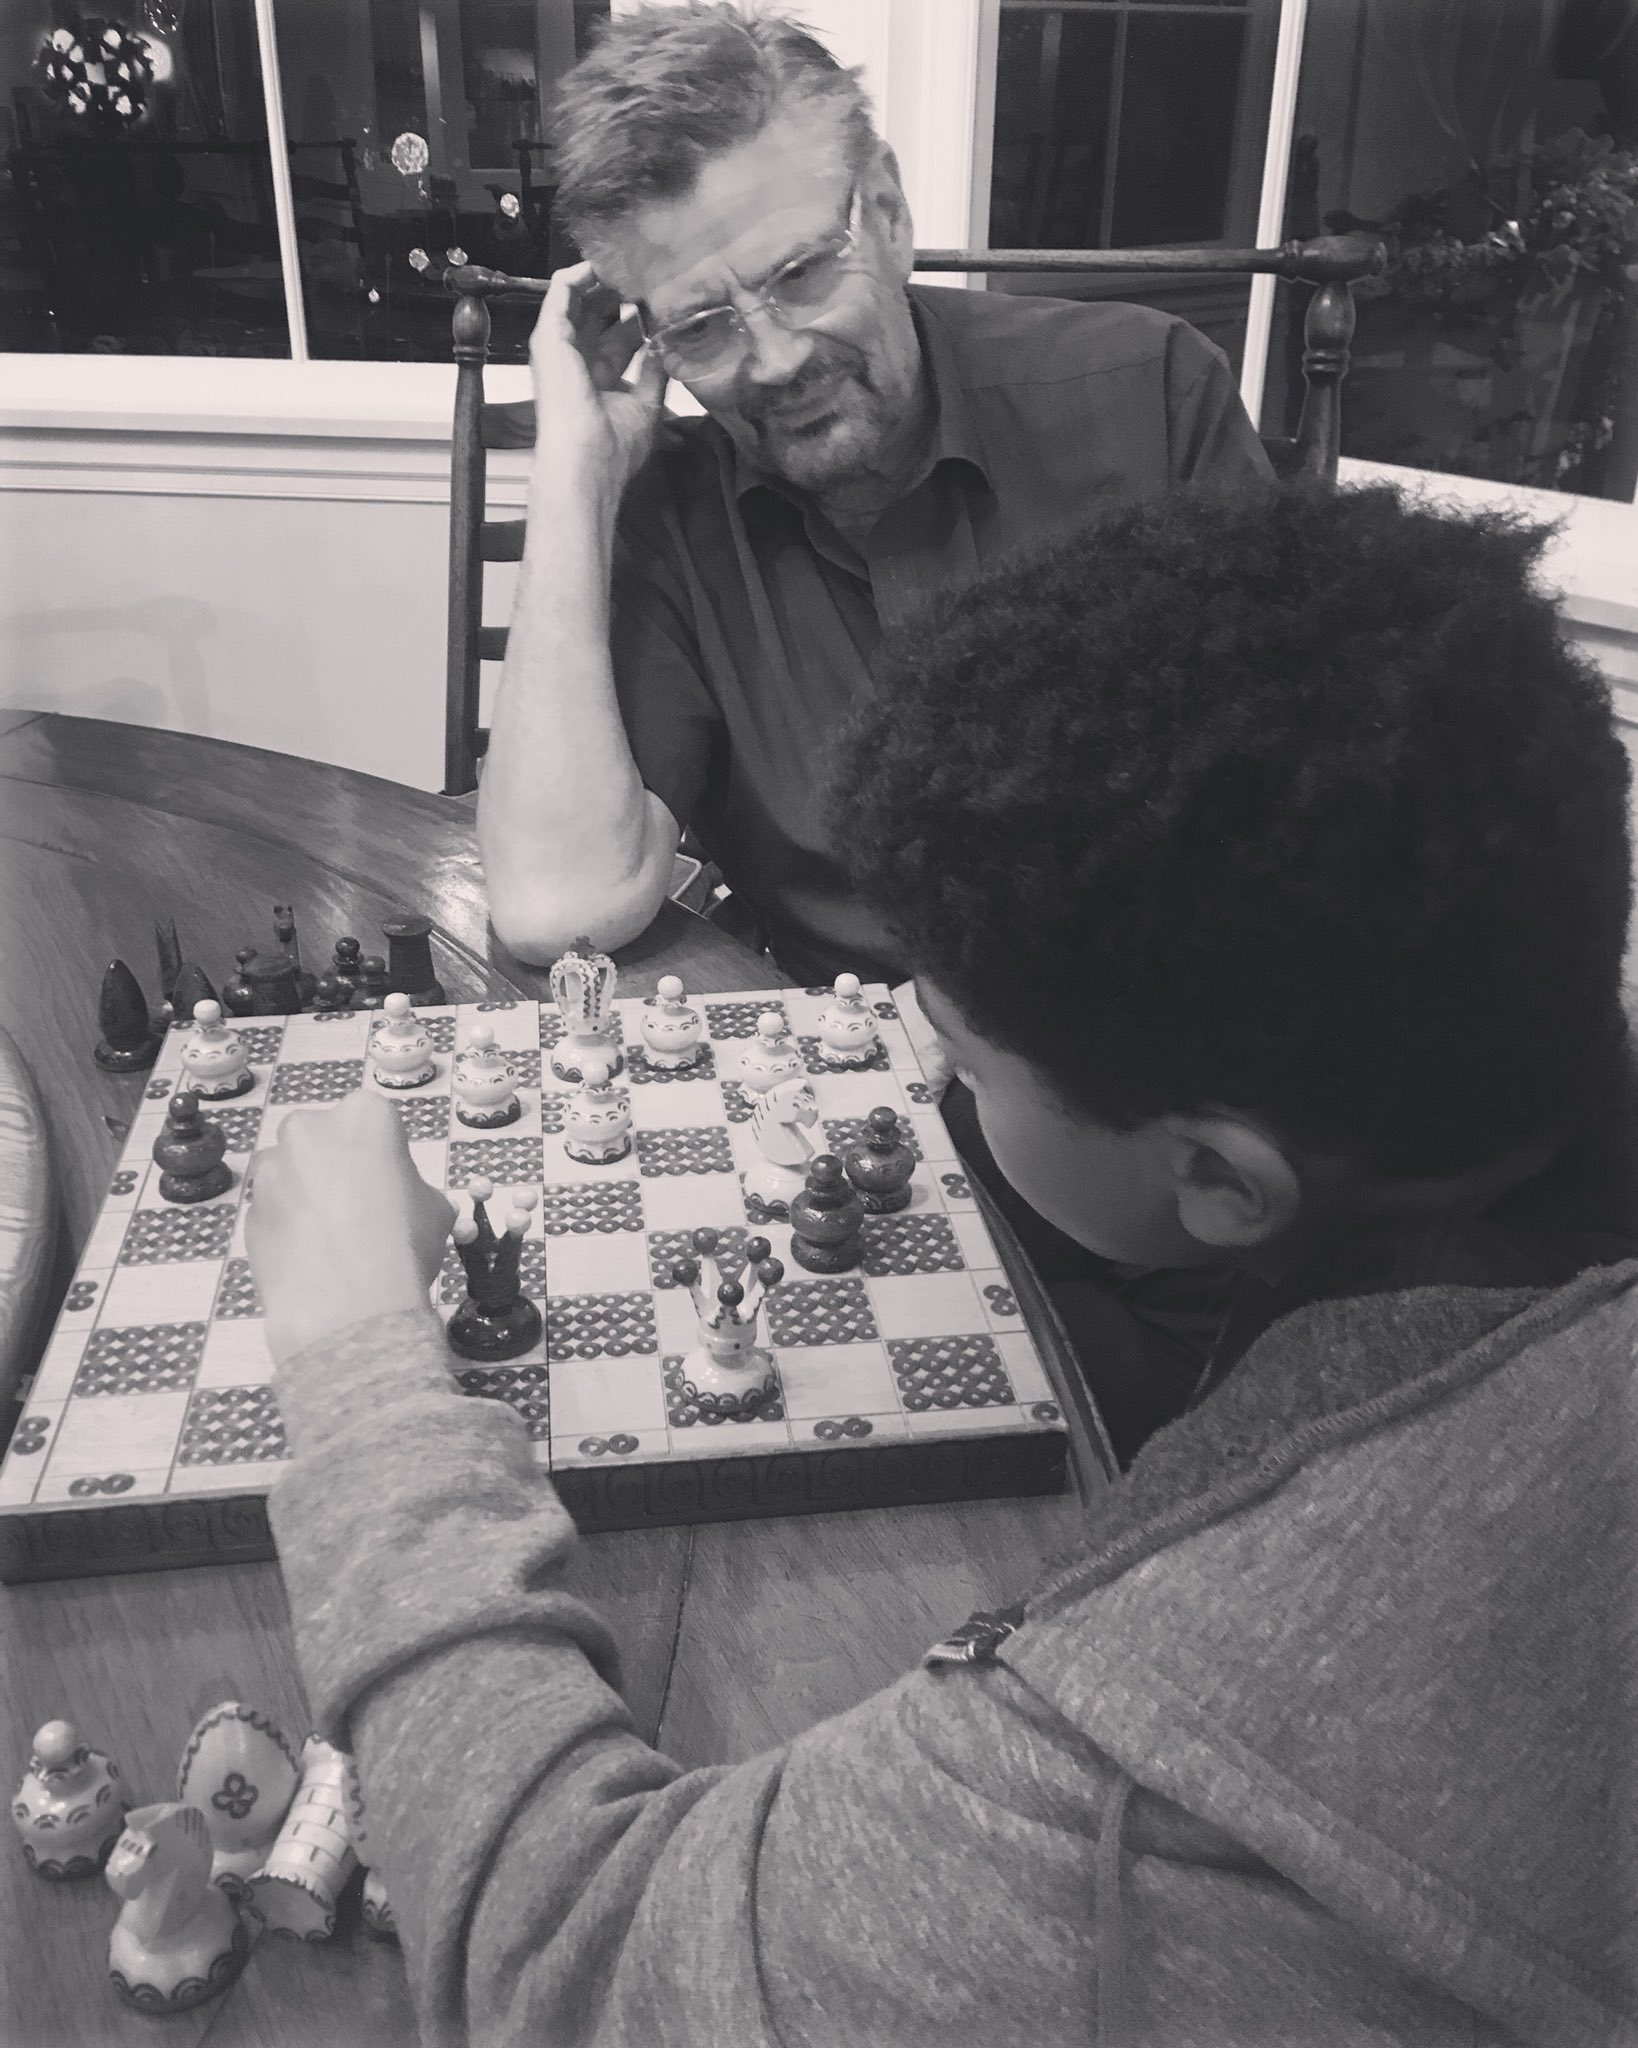 I loved playing Chess with my dad growing up .... now he plays with my son 😊 https://t.co/udR7jt9ZwO